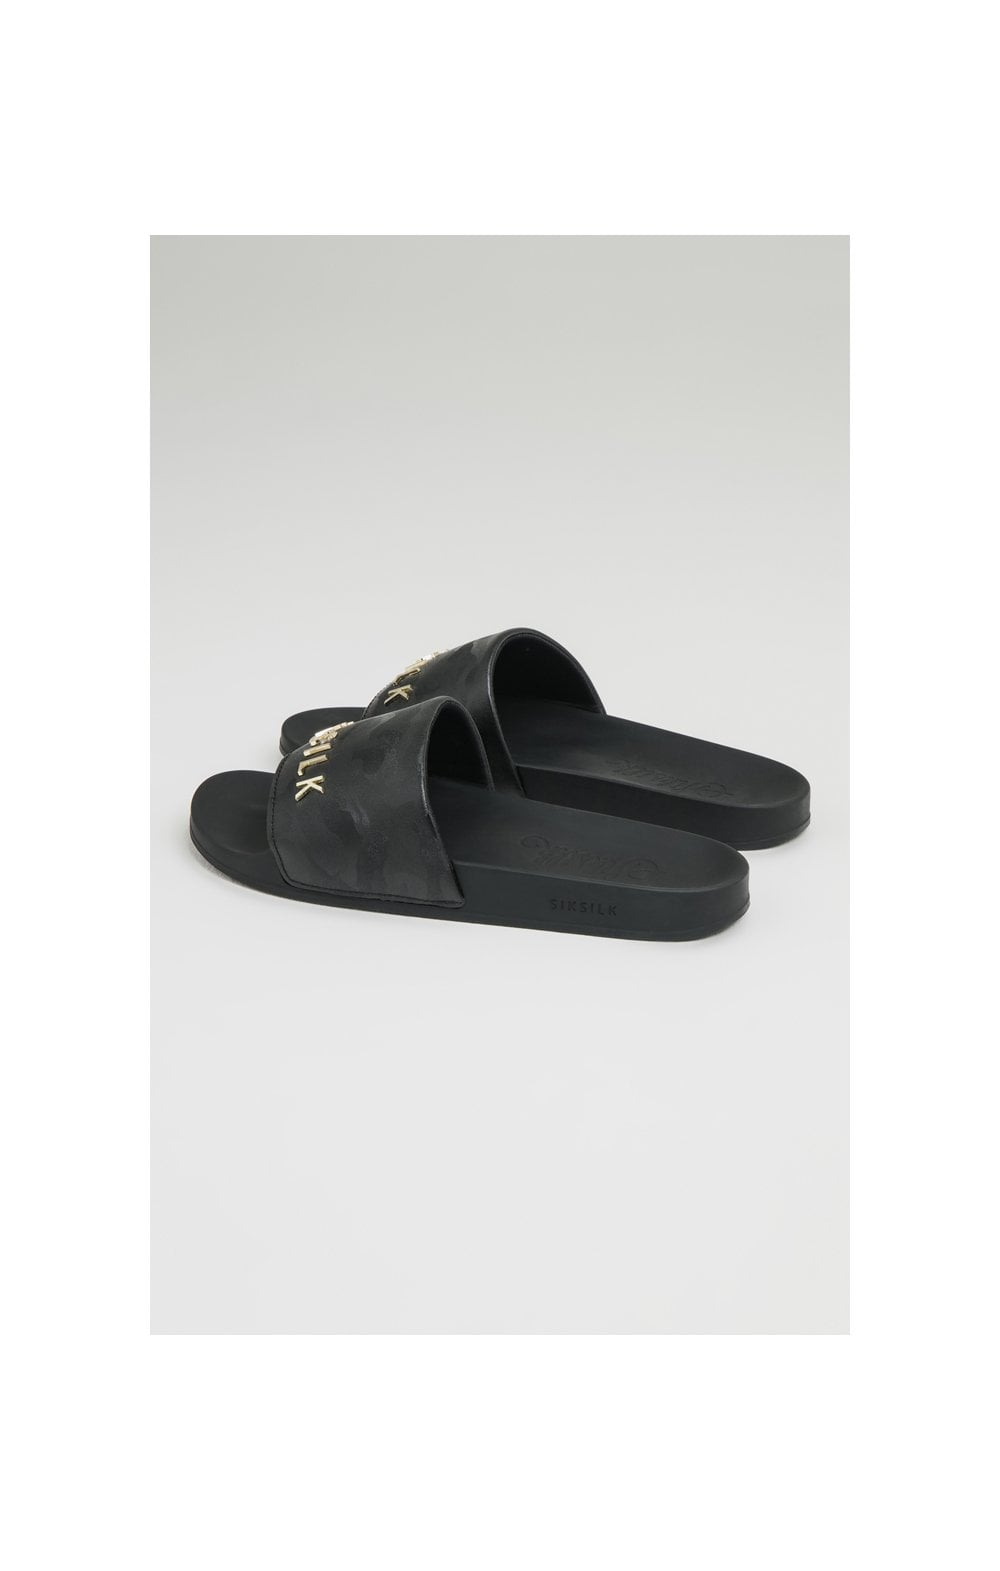 SikSilk Alpha Camo Slides - Black (3)